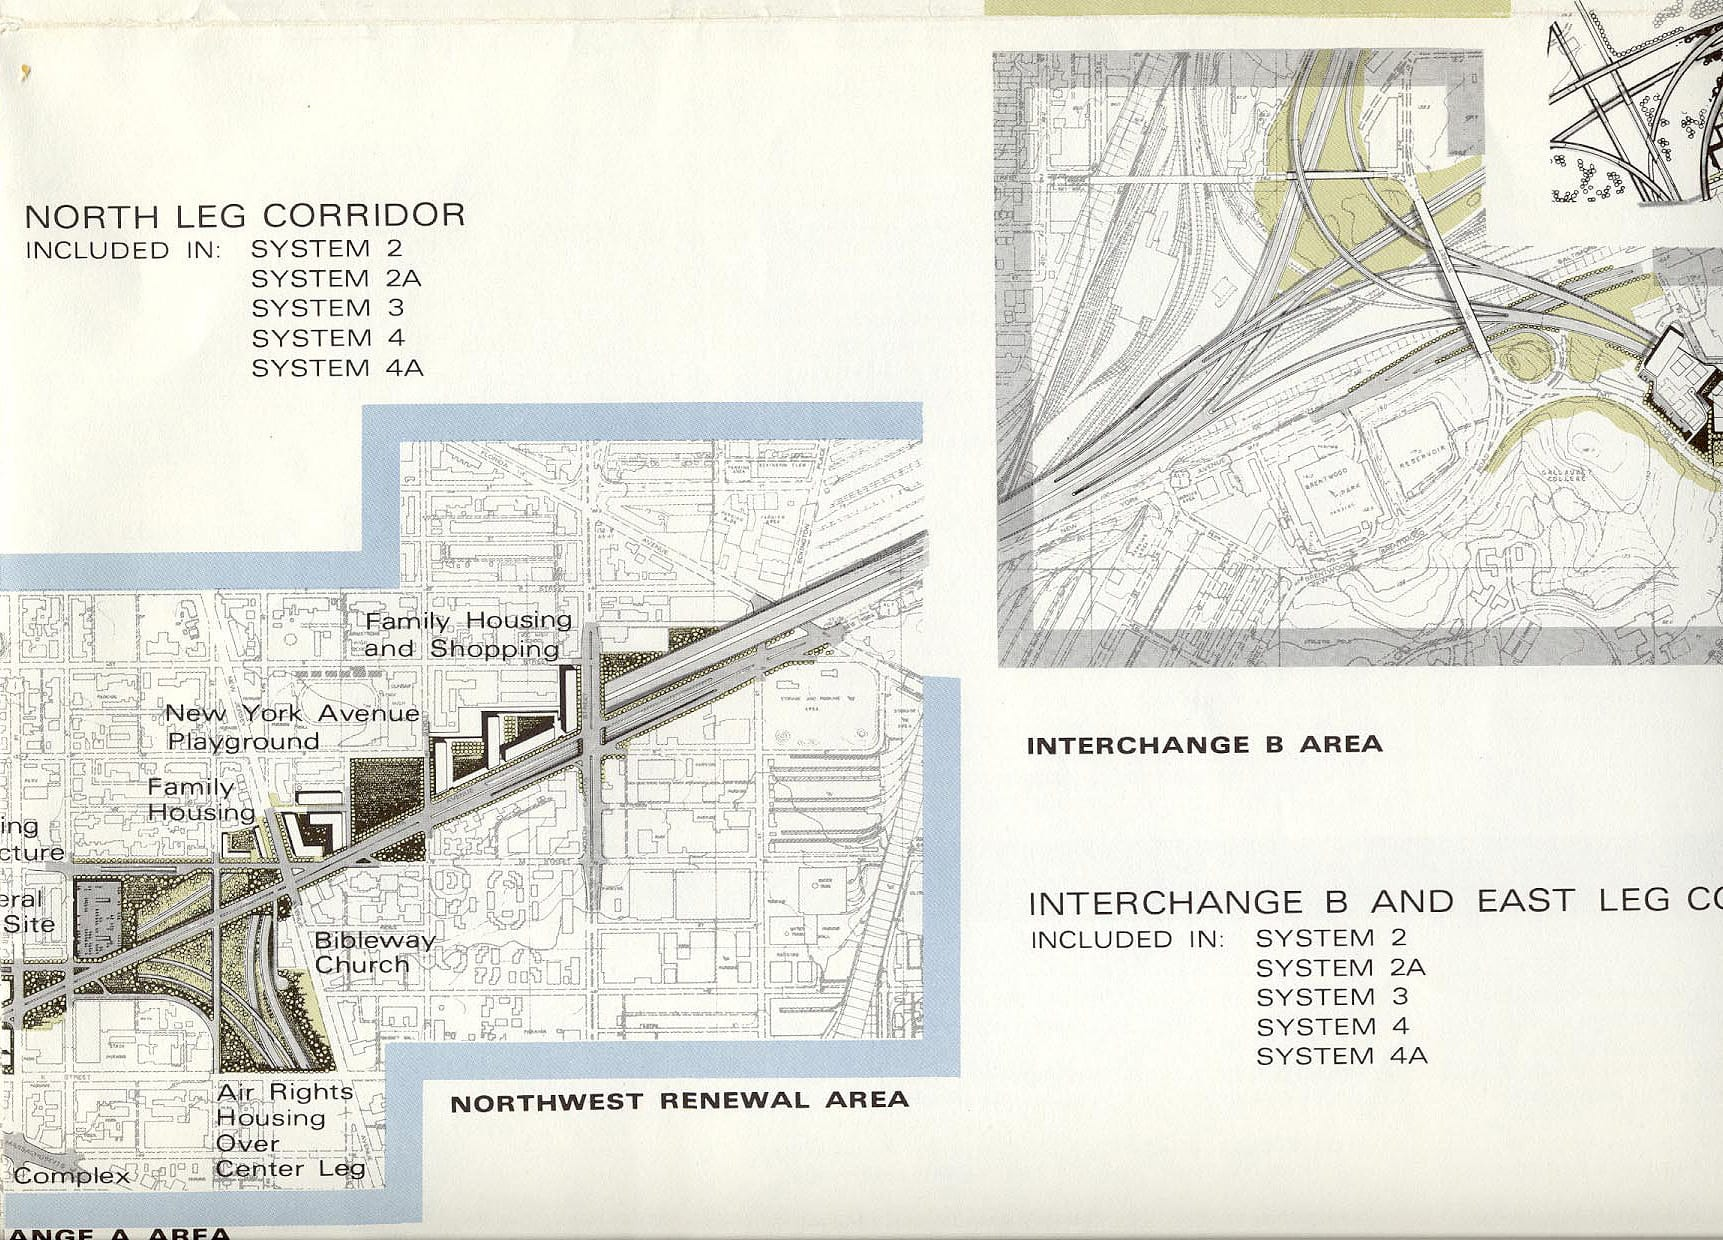 Notice the decked/tunneled section along New York Avenue.